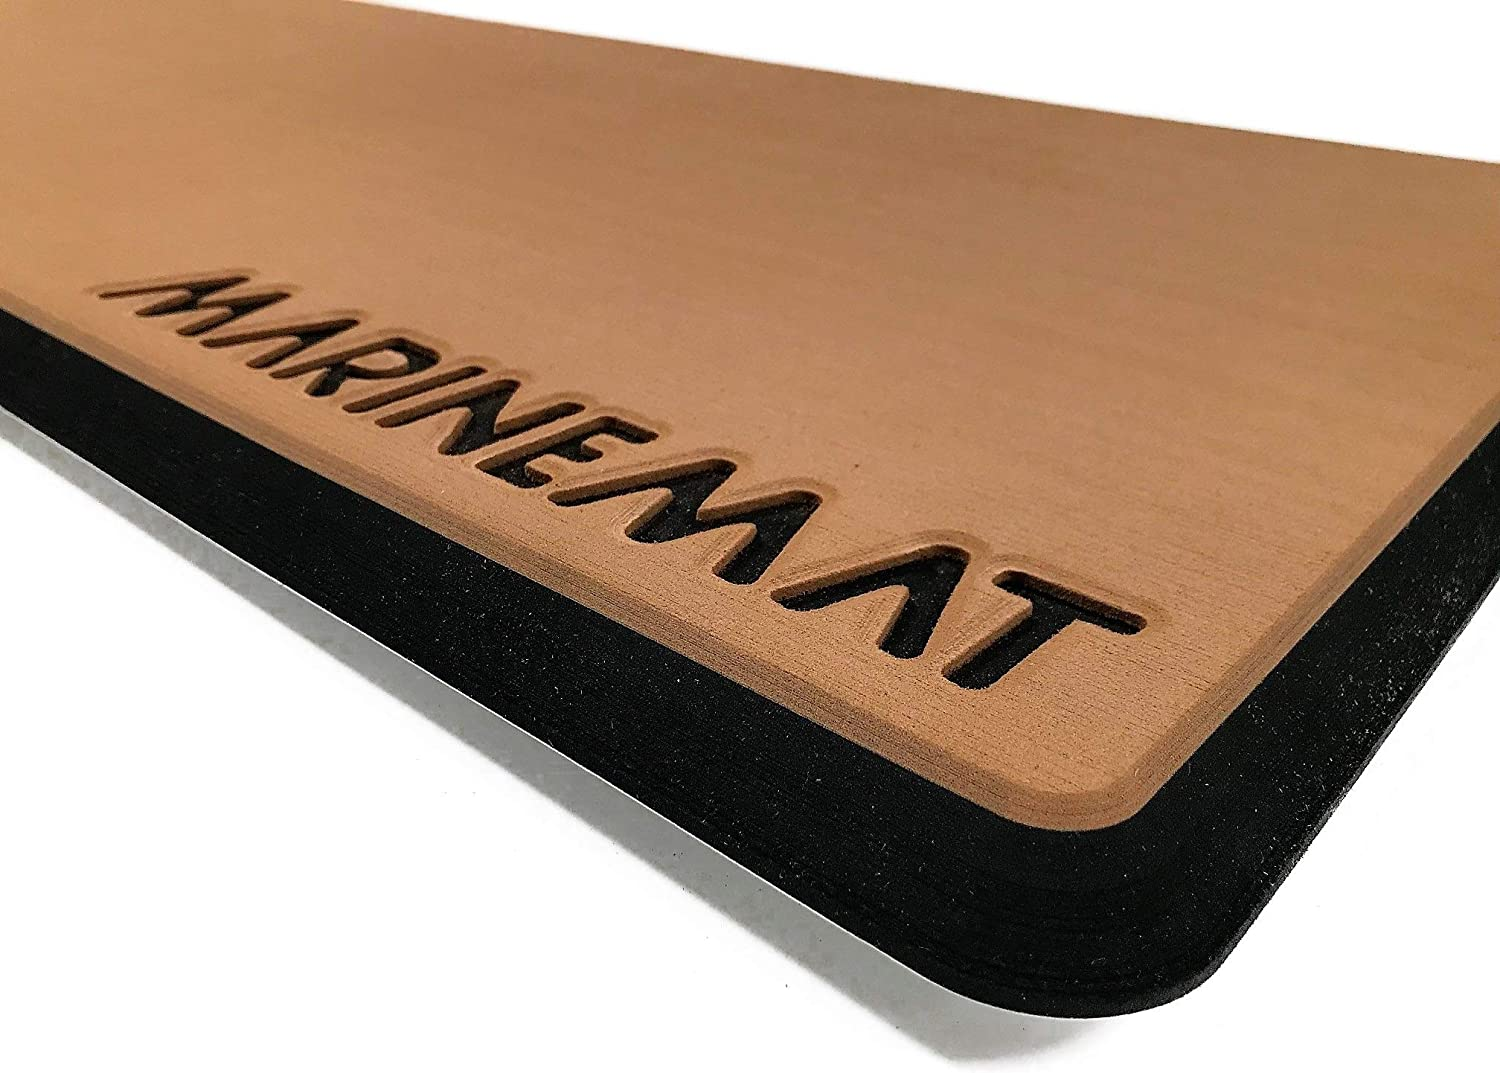 Helm Pads for boats Marine flooring Marine Mats Boat accessories